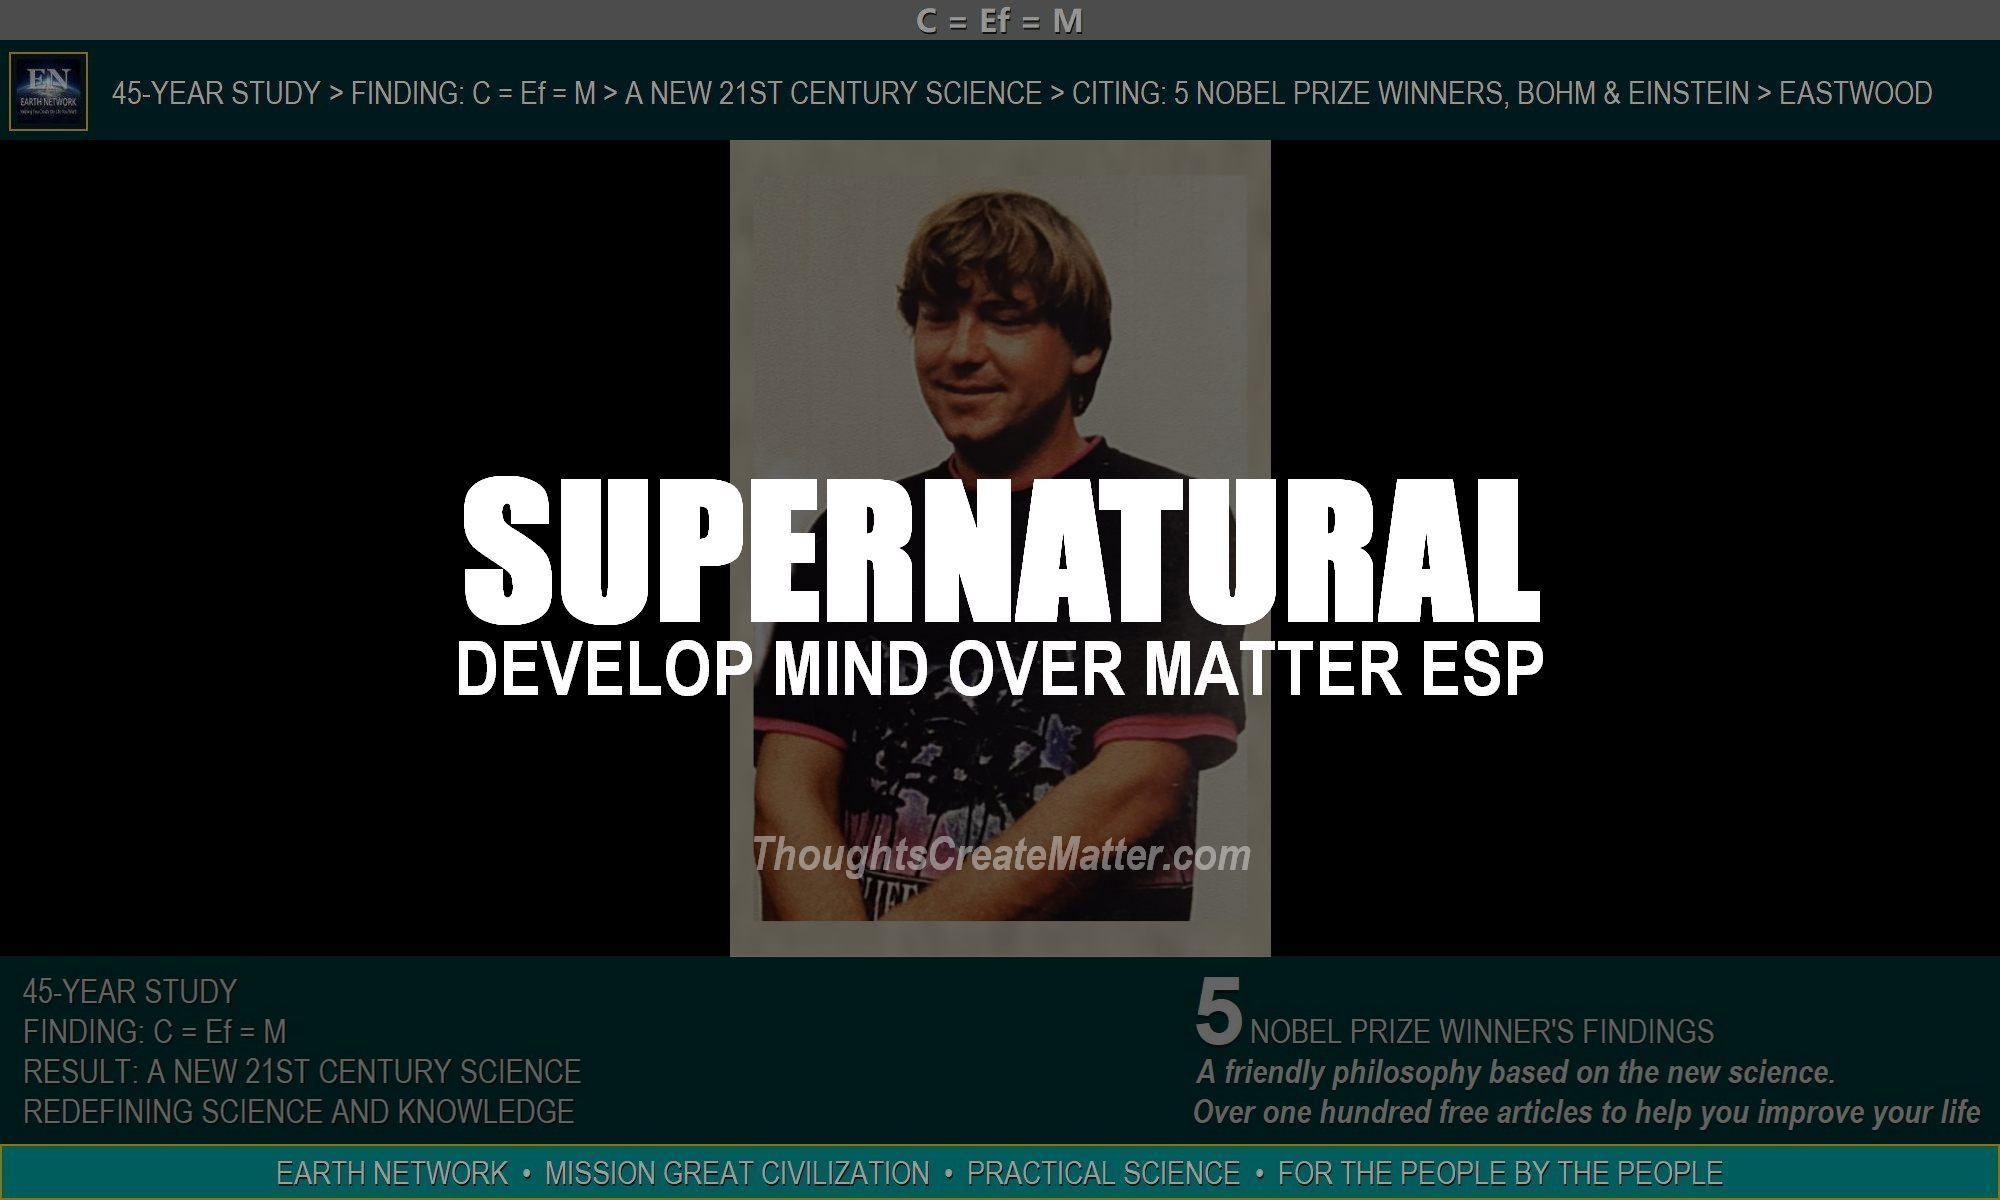 Eastwood signifies true mind over matter ESP. Learn to develop supernatural power.